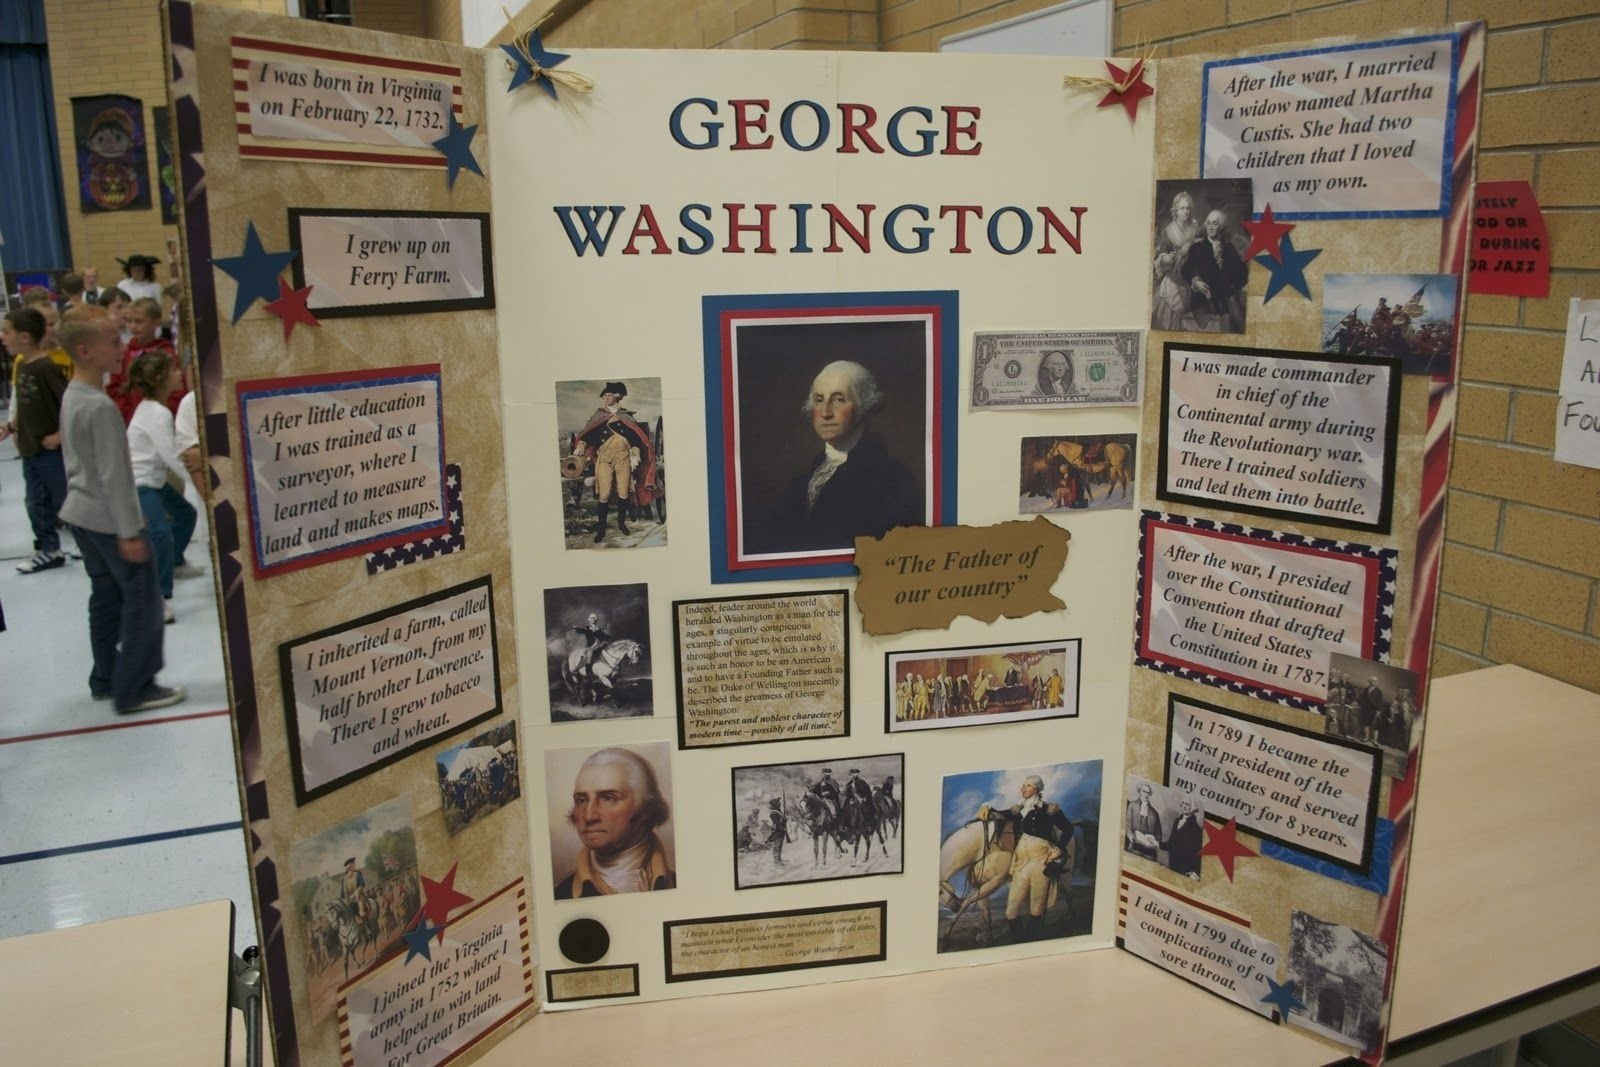 10 Best Poster Board Ideas For School Projects what the teacher wants social studies teacher and school 2020